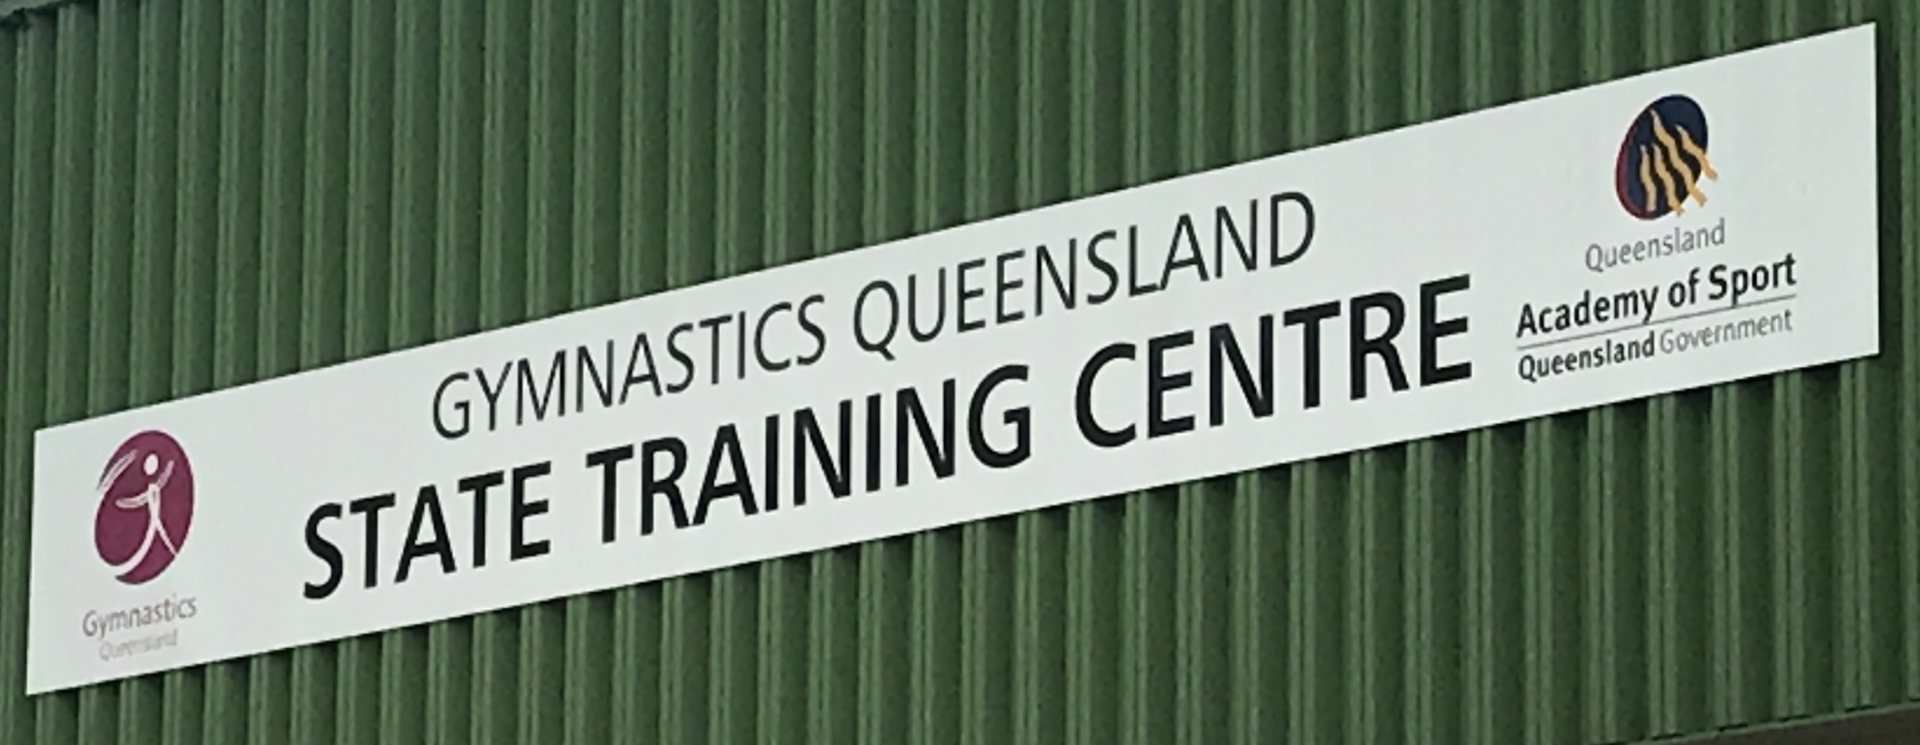 Sleeman Sports Complex - Gymnastics Queensland